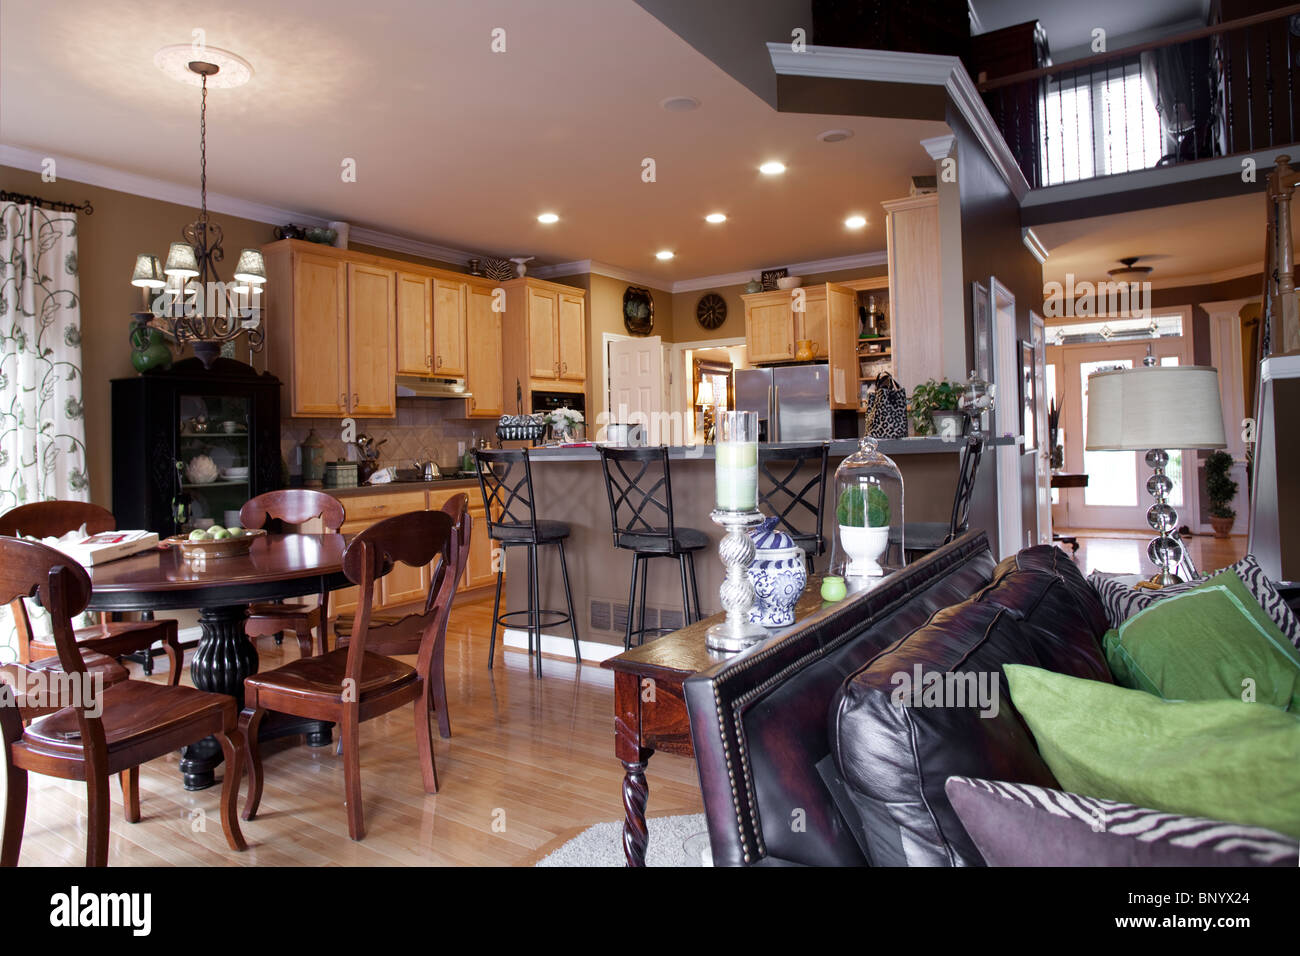 American Kitchen With Dining Room Annexed And Open Space Towards Living Room  With Leather Sofa